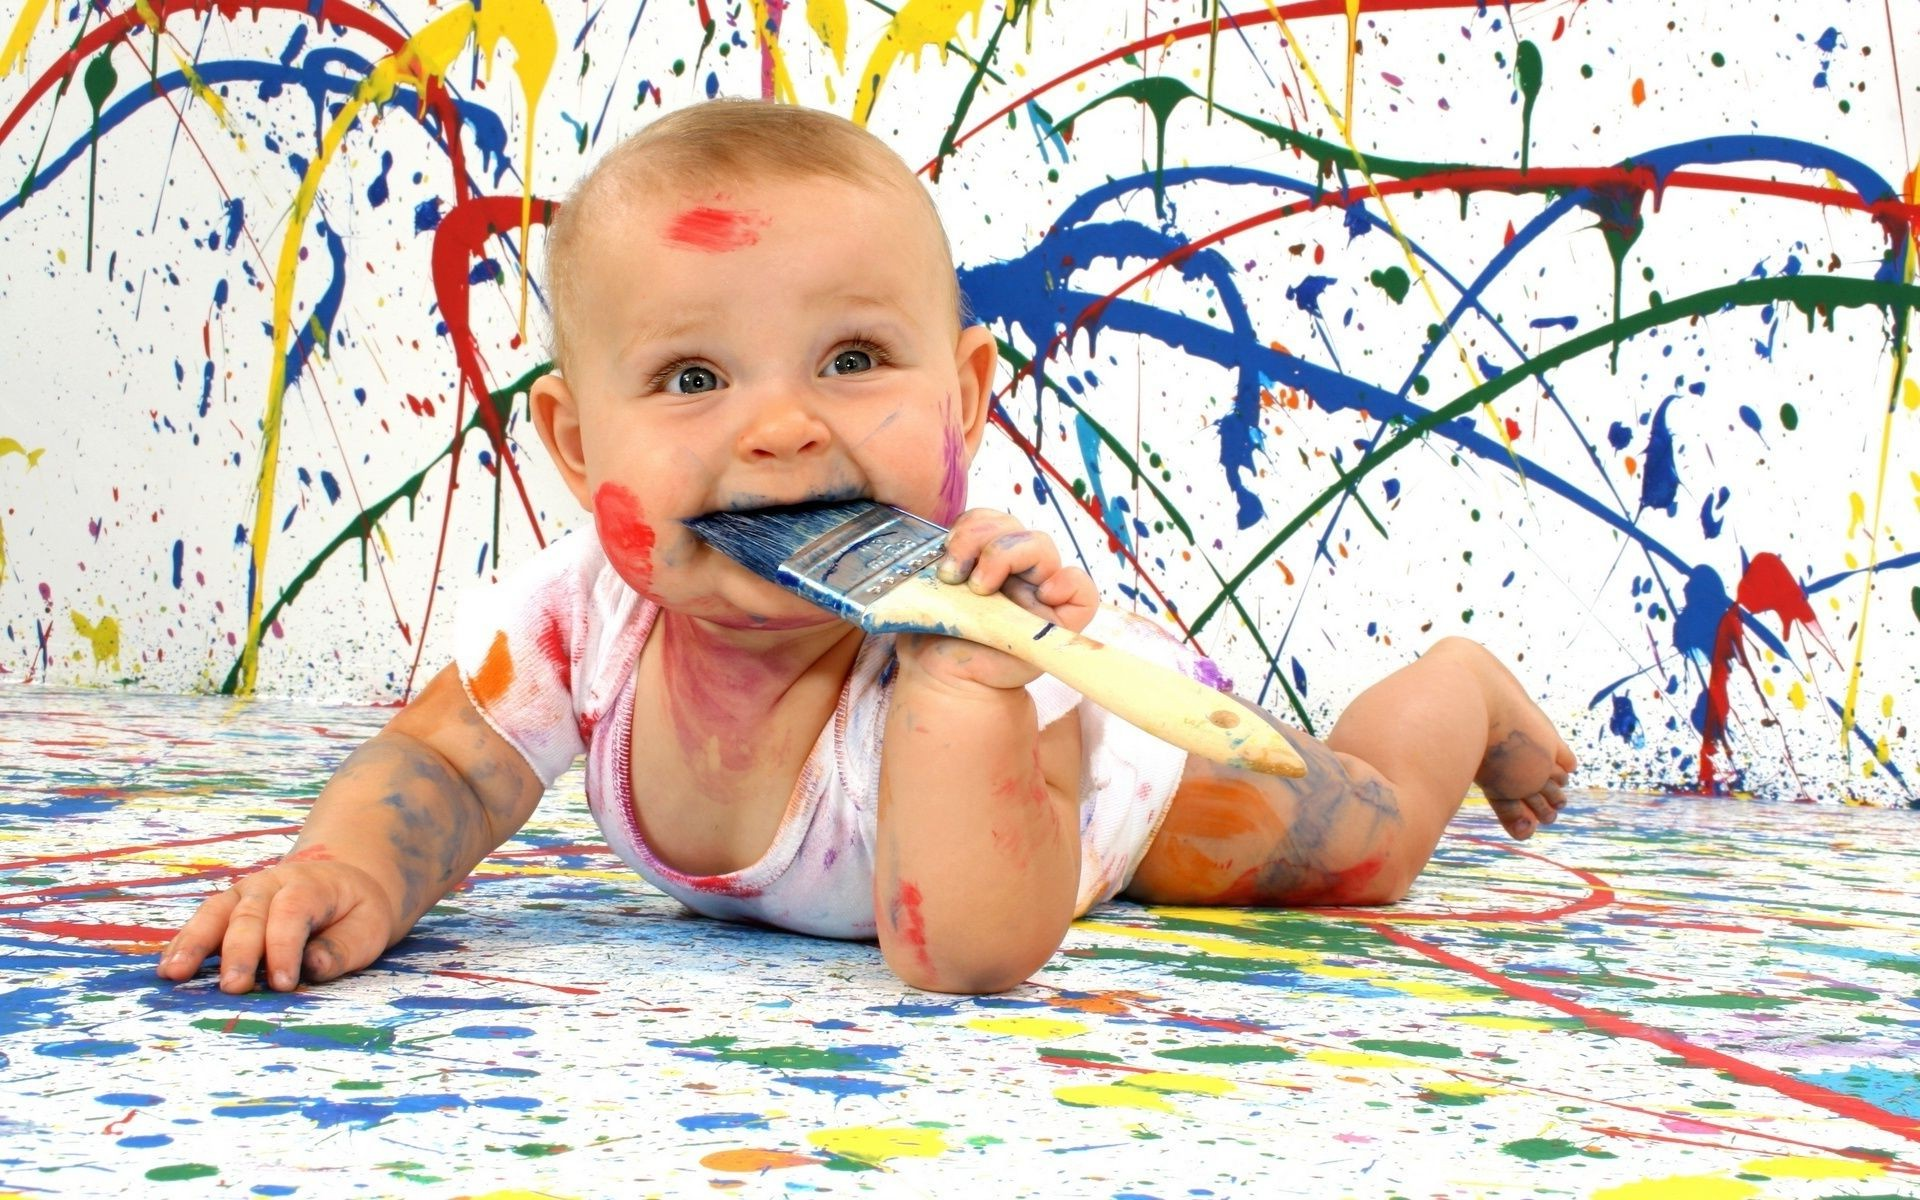 babies child fun little cute girl creativity baby beautiful happiness painting leisure play one boy joy portrait